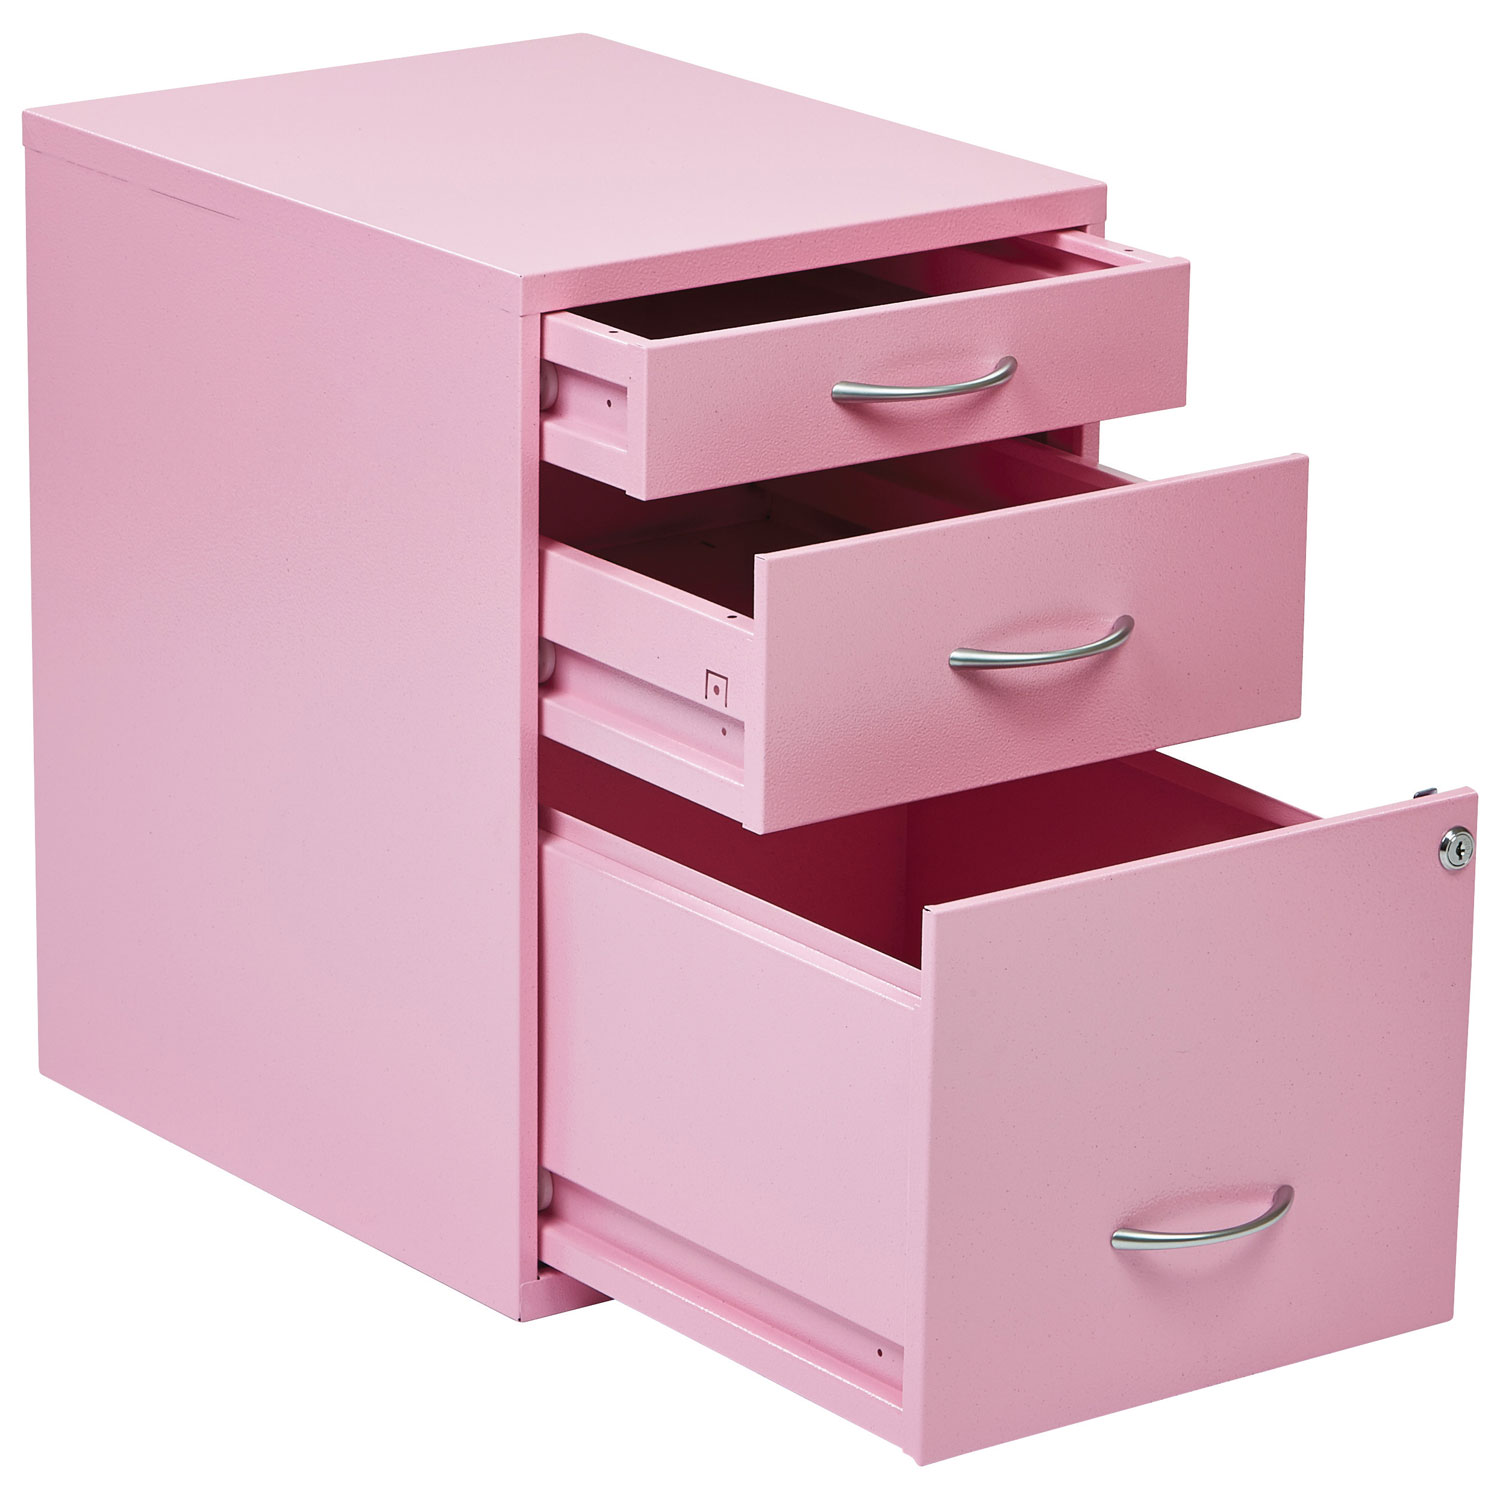 OSP Designs Modern 3-Drawer File Cabinet - Pink : Filing Cabinets ...